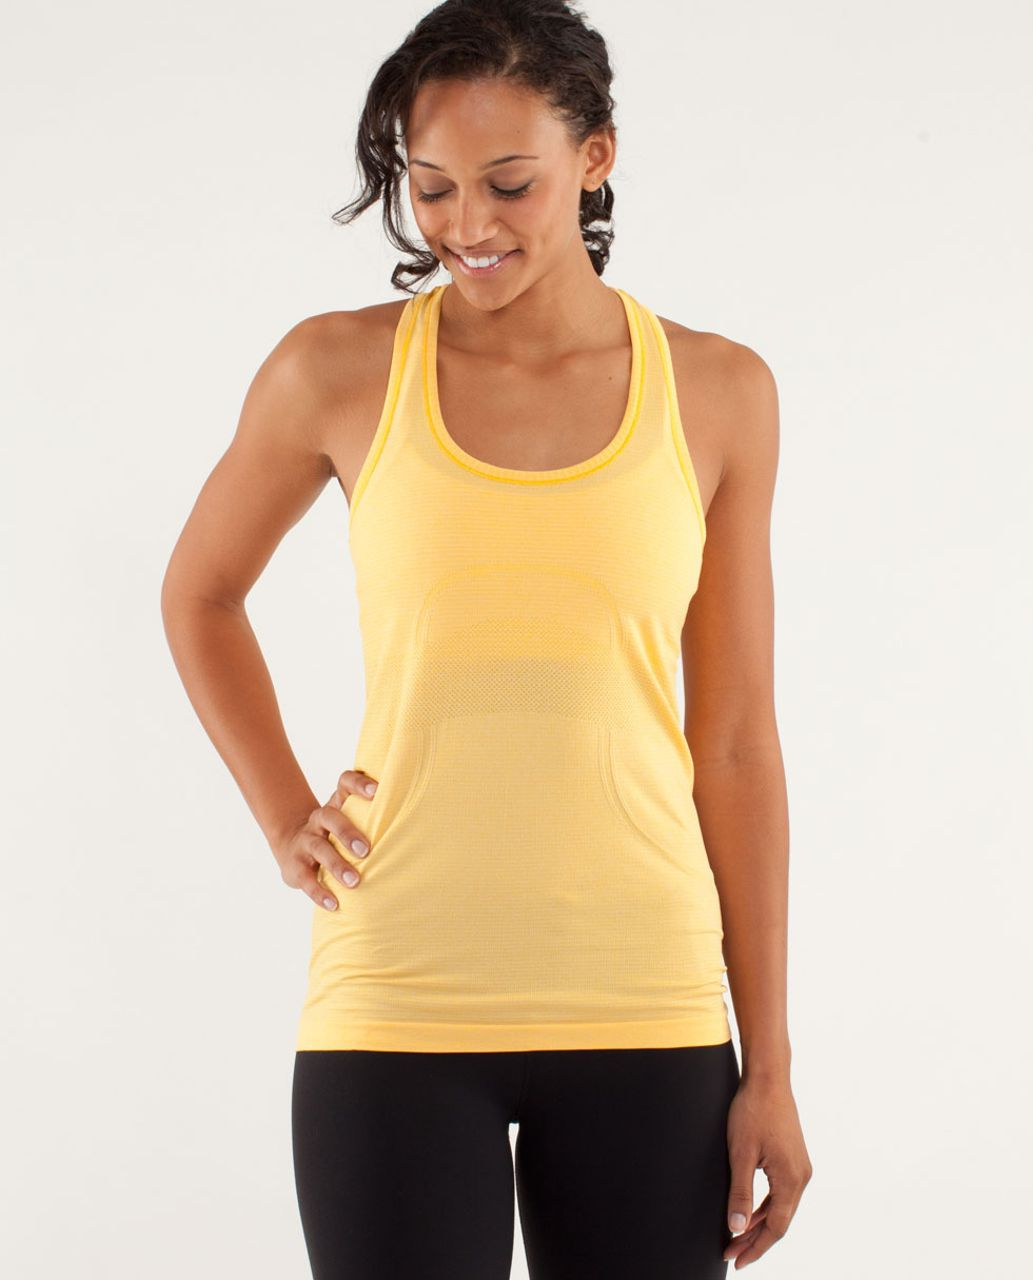 bc3e503fcf Lululemon Run  Swiftly Tech Racerback - Burning Yellow - lulu fanatics